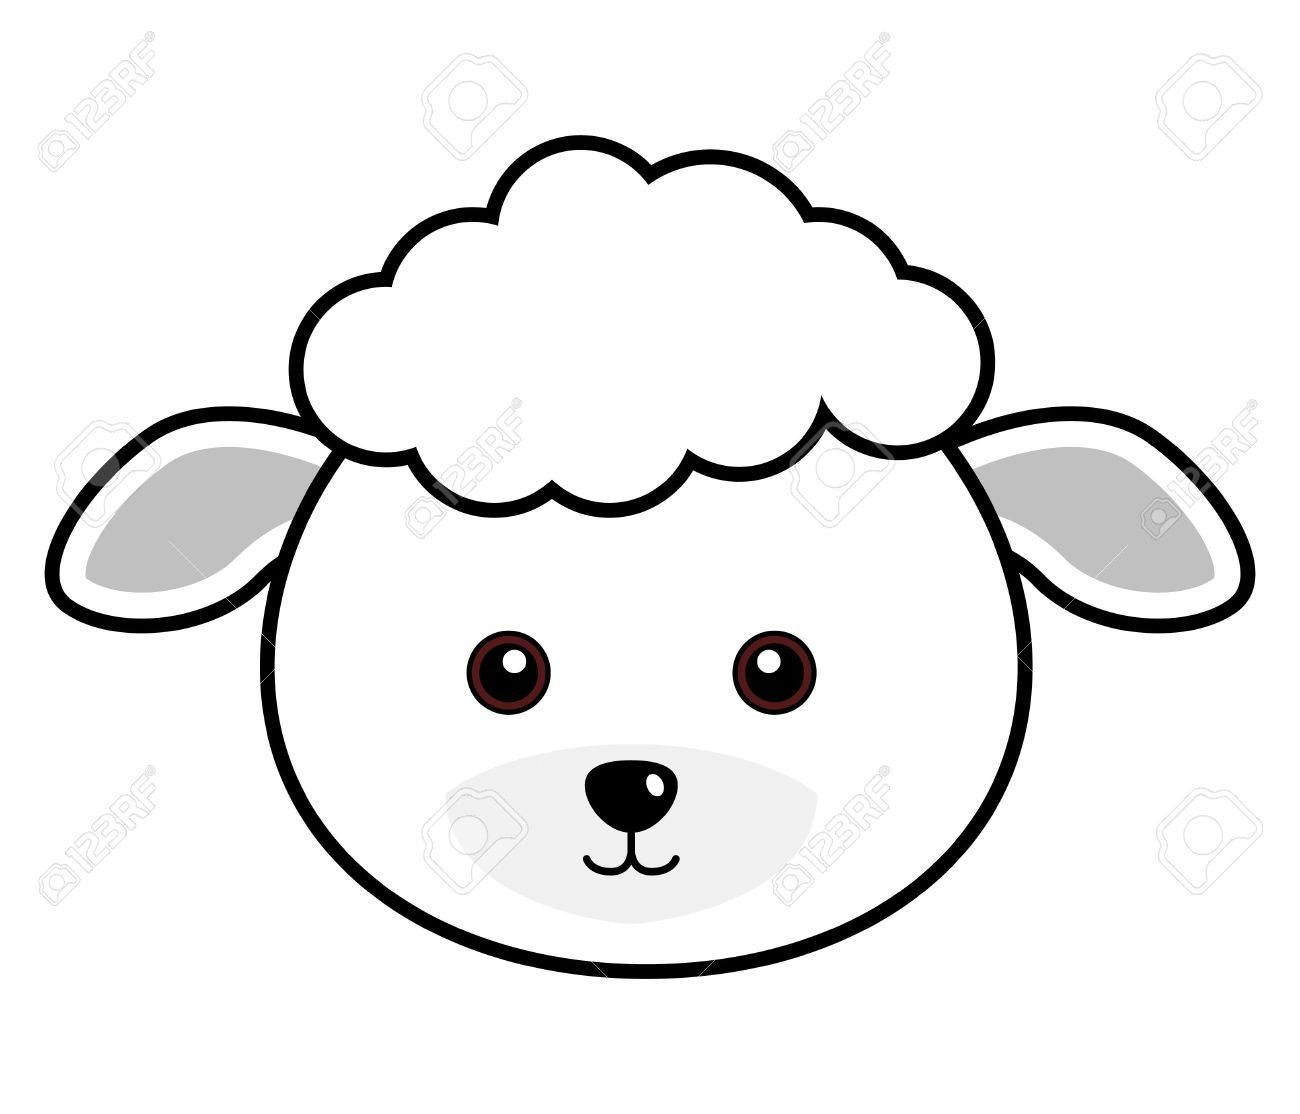 Cute Sheep Vector Stock Illustrations Vectors Face Resolutions Animals Animal Faces Pretty